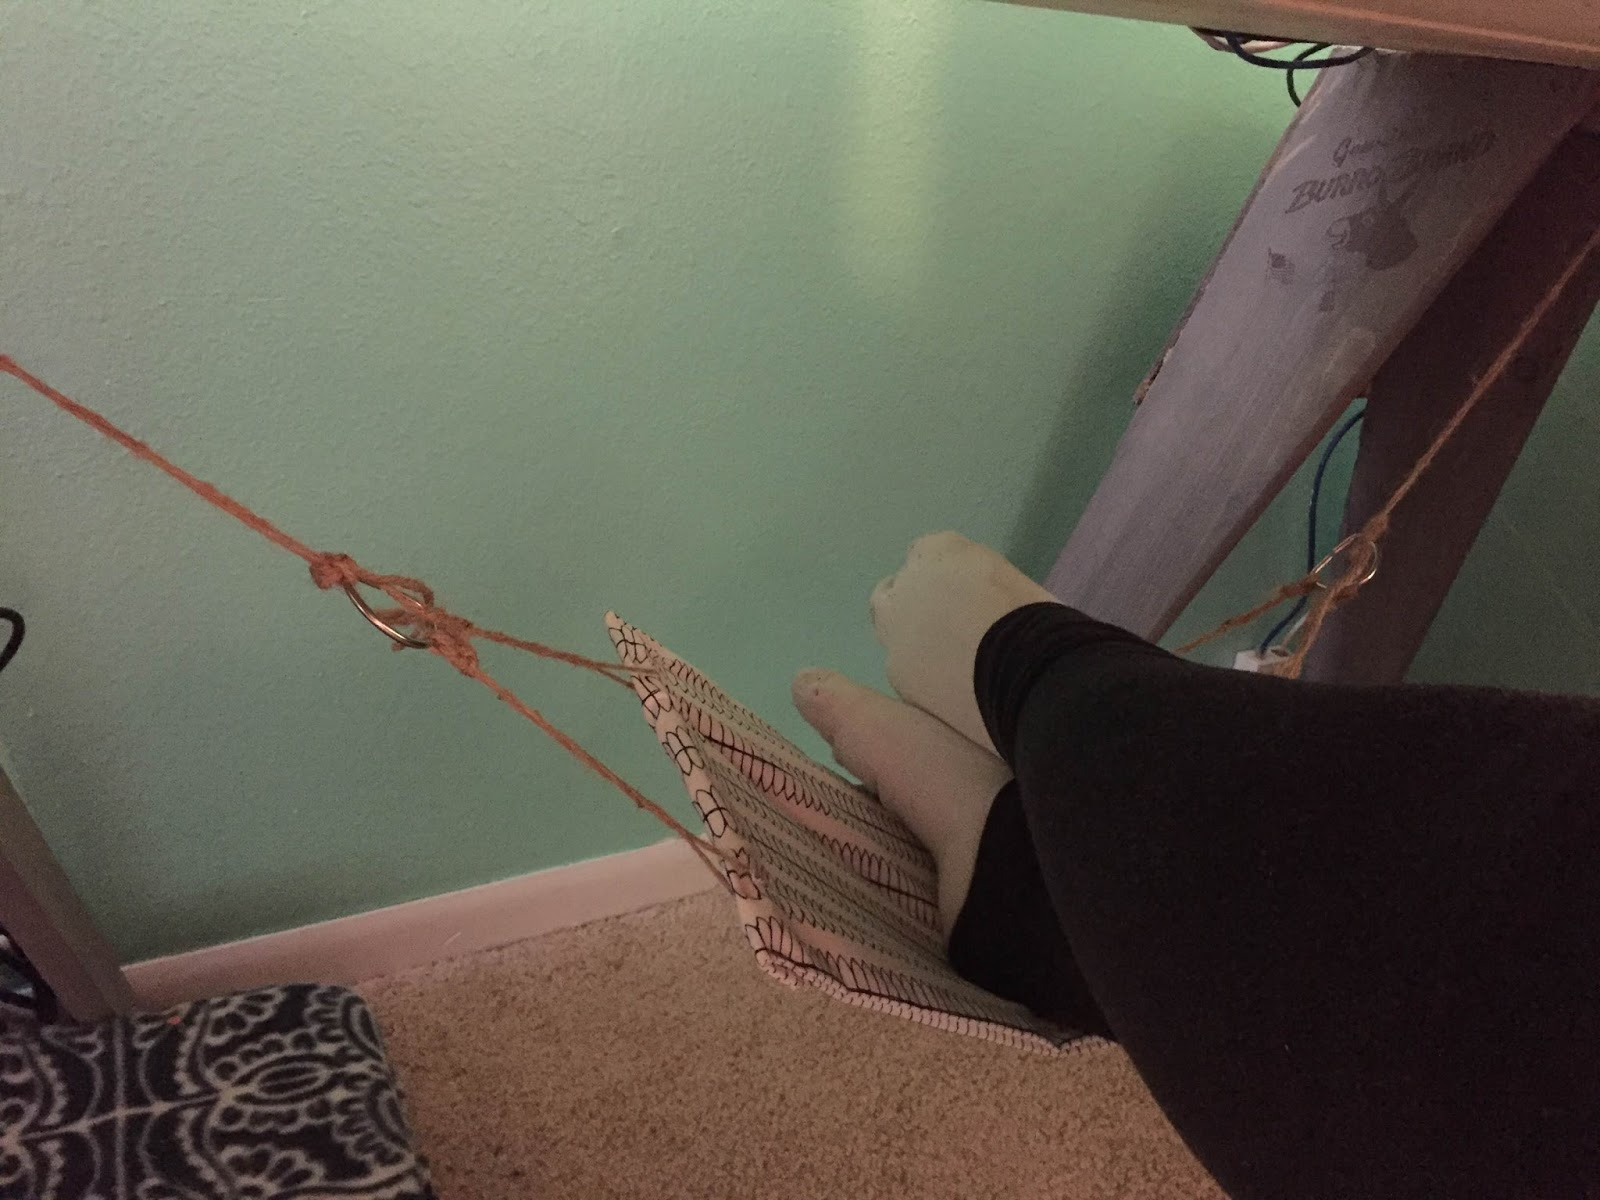 enjoy your diy foot hammock  my feet are safe from the crazy kitten and they are chillin u0027 like a villian     the dabbling crafter  diy sunday  diy foot  under desk  hammock  rh   thedabblingcrafter